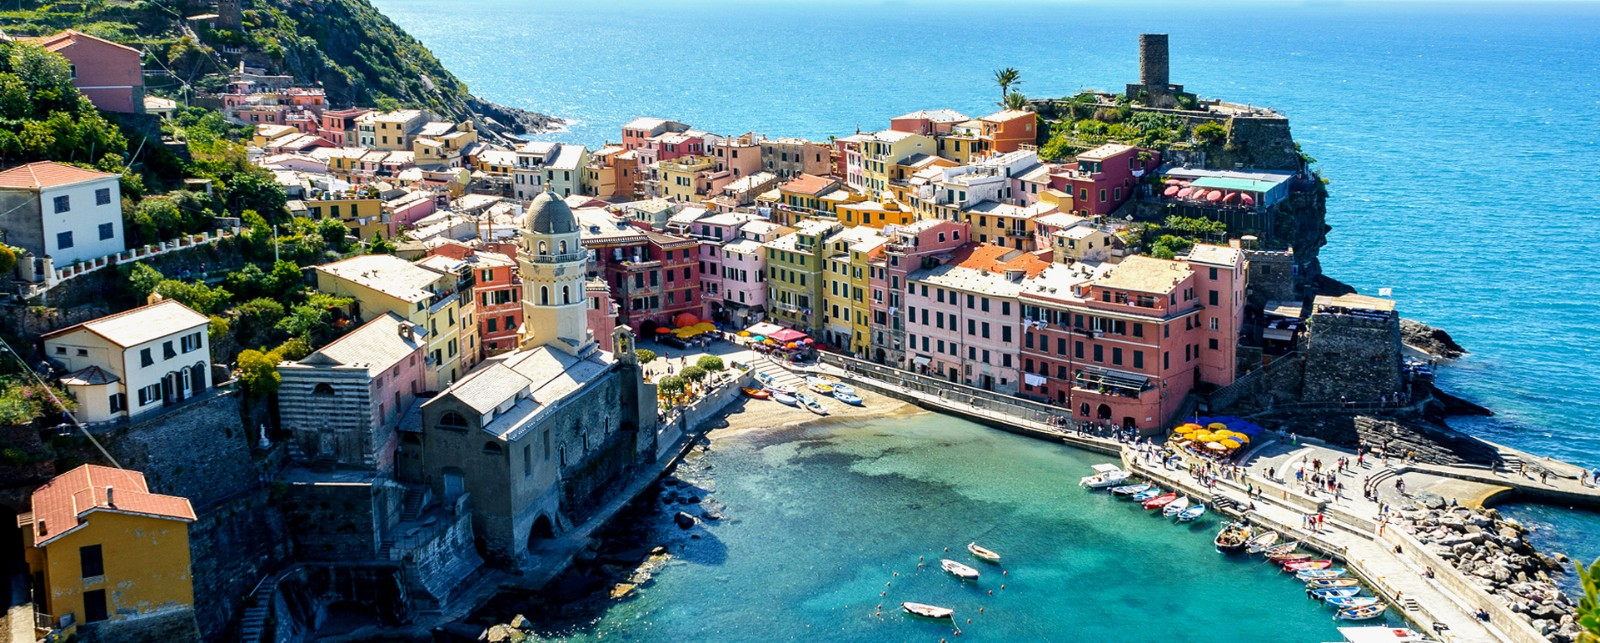 Armanda affittacamere and Casa Giamba Bed & Breakfast - Vernazza, Cinque Terre (SP) - Italy